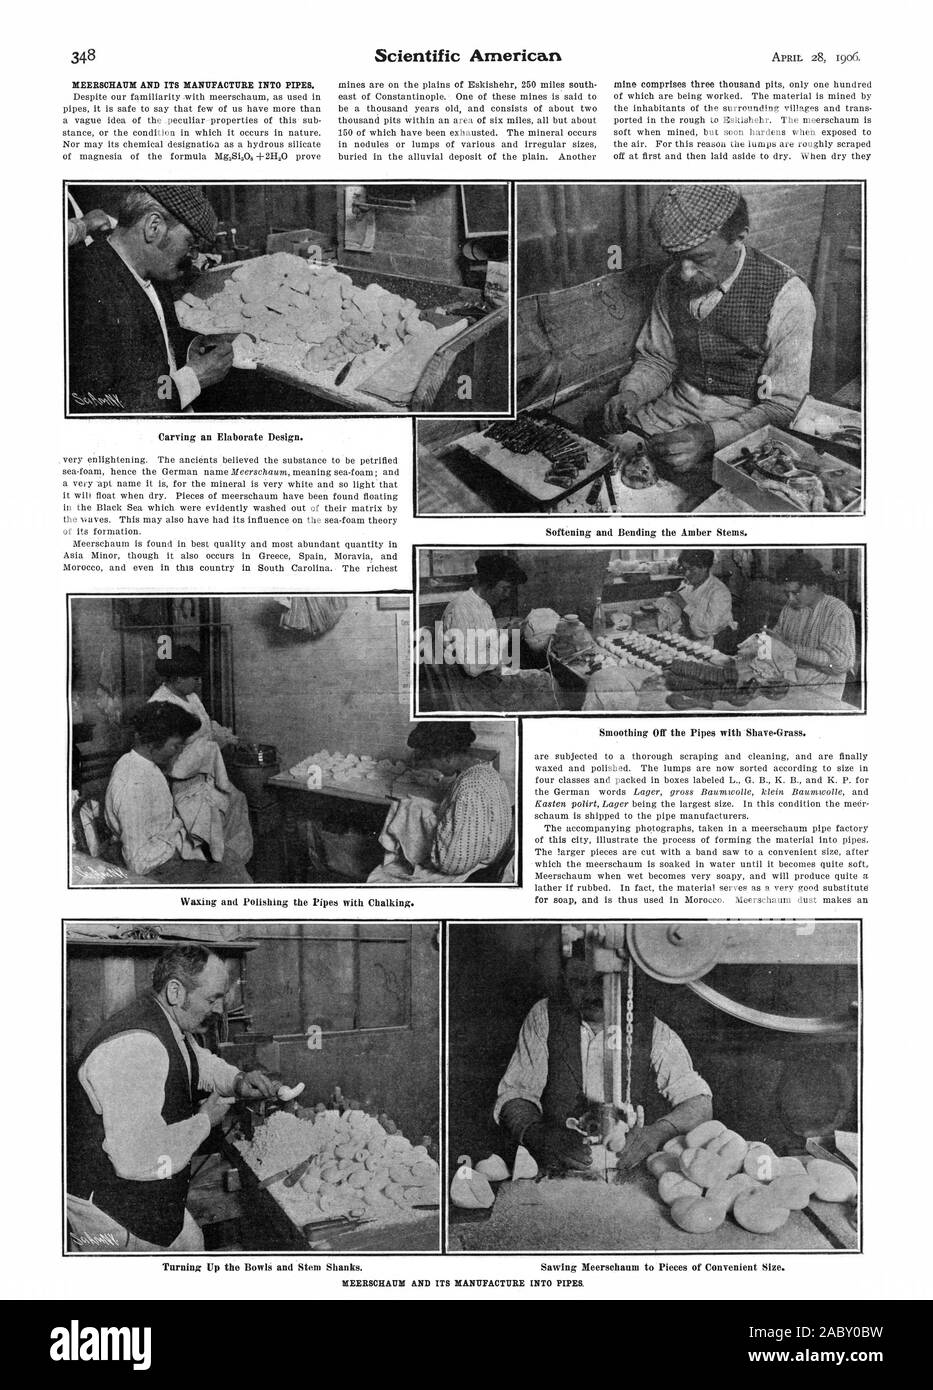 Carving an Elaborate Design. Smoothing Off the Pipes with Shave-Grass., scientific american, 1906-04-28 Stock Photo